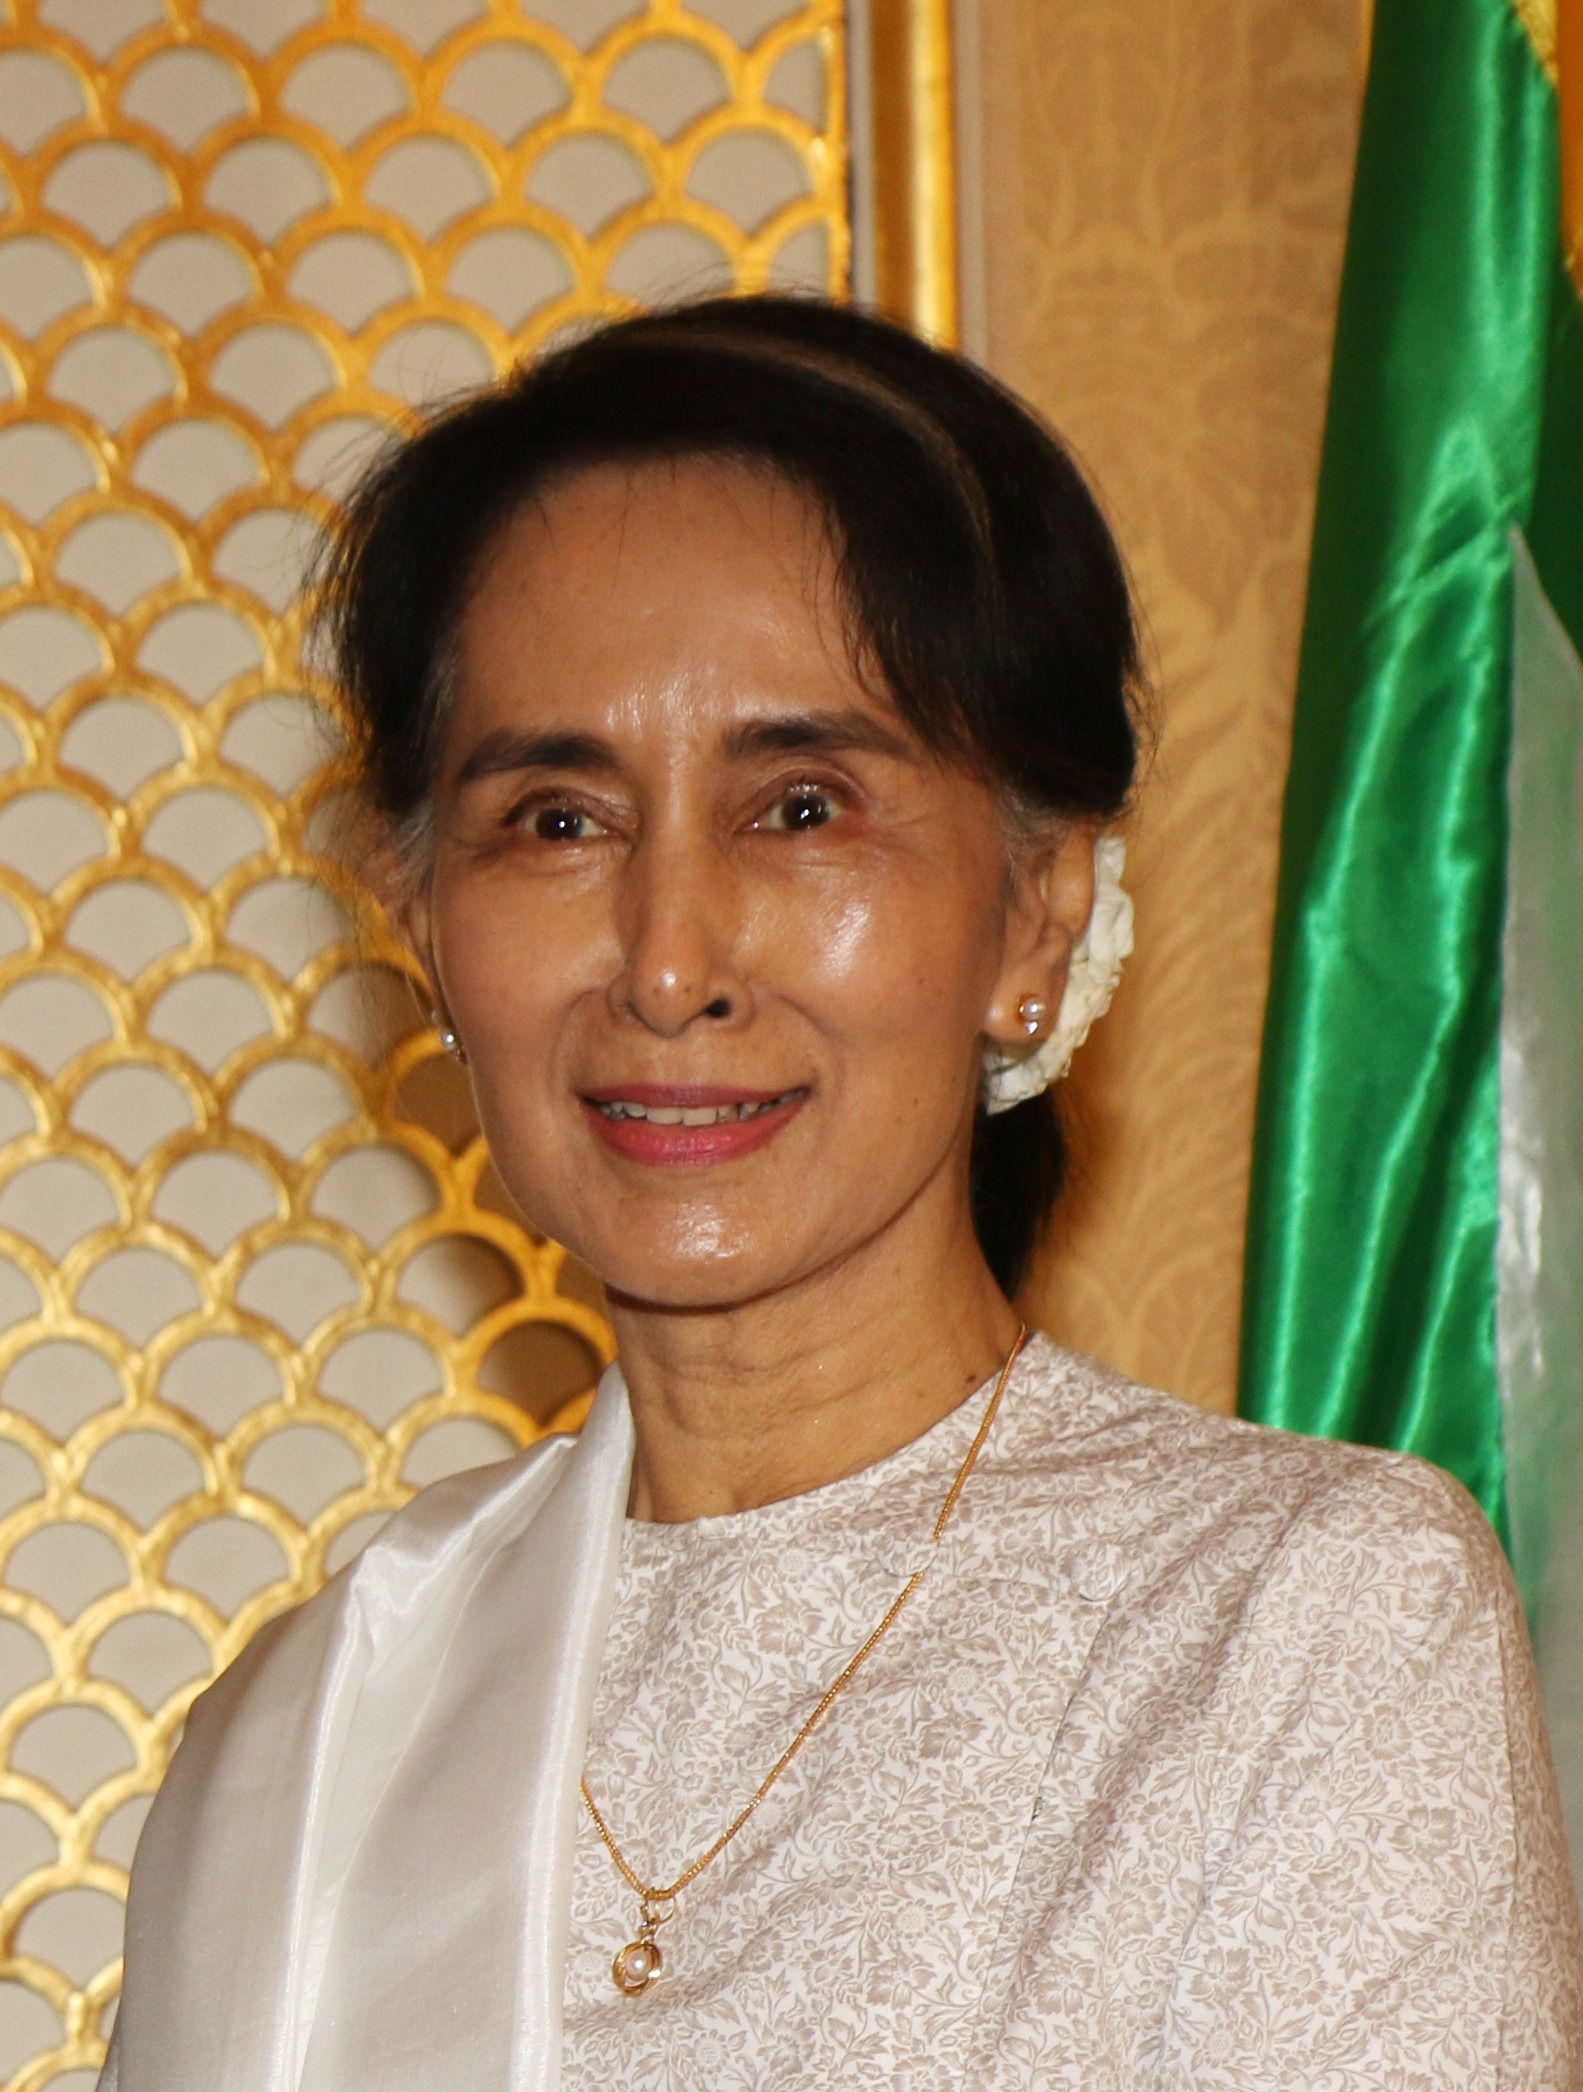 Photo of Aung San Suu Kyi: State Counsellor of Myanmar and Leader of the National League for Democracy